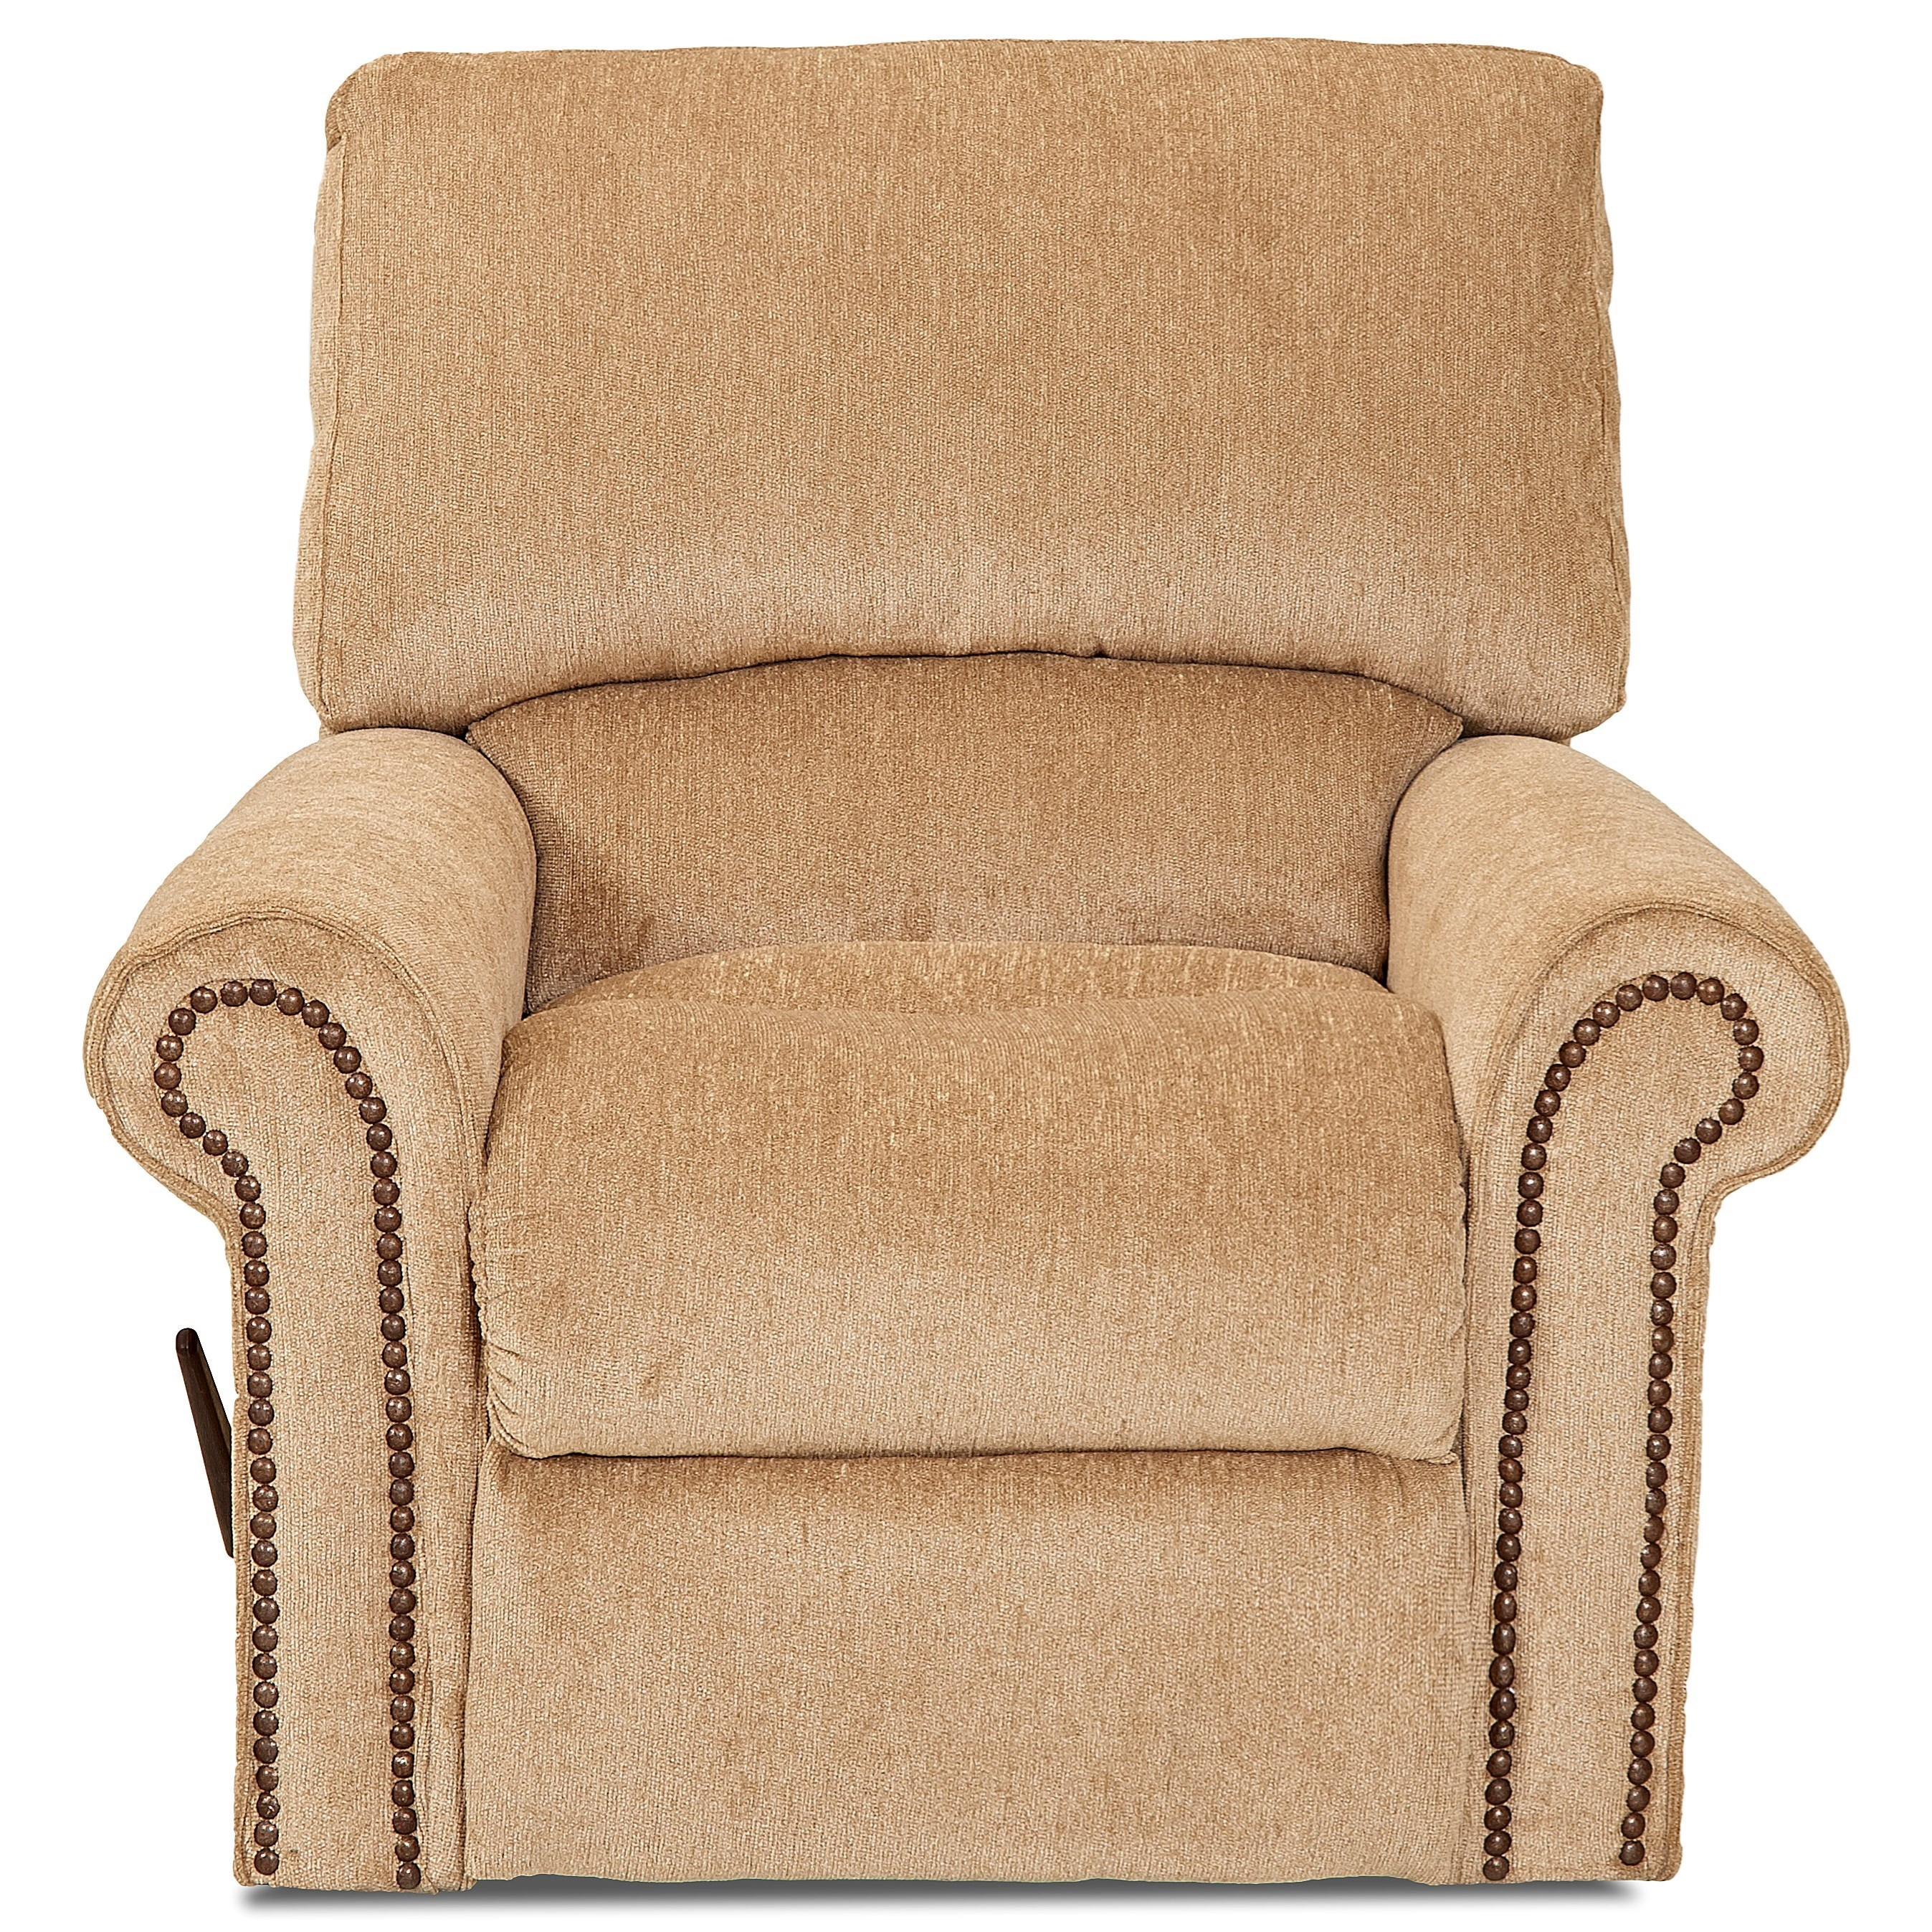 Reclining Chair with Rolled Arms and Nailheads